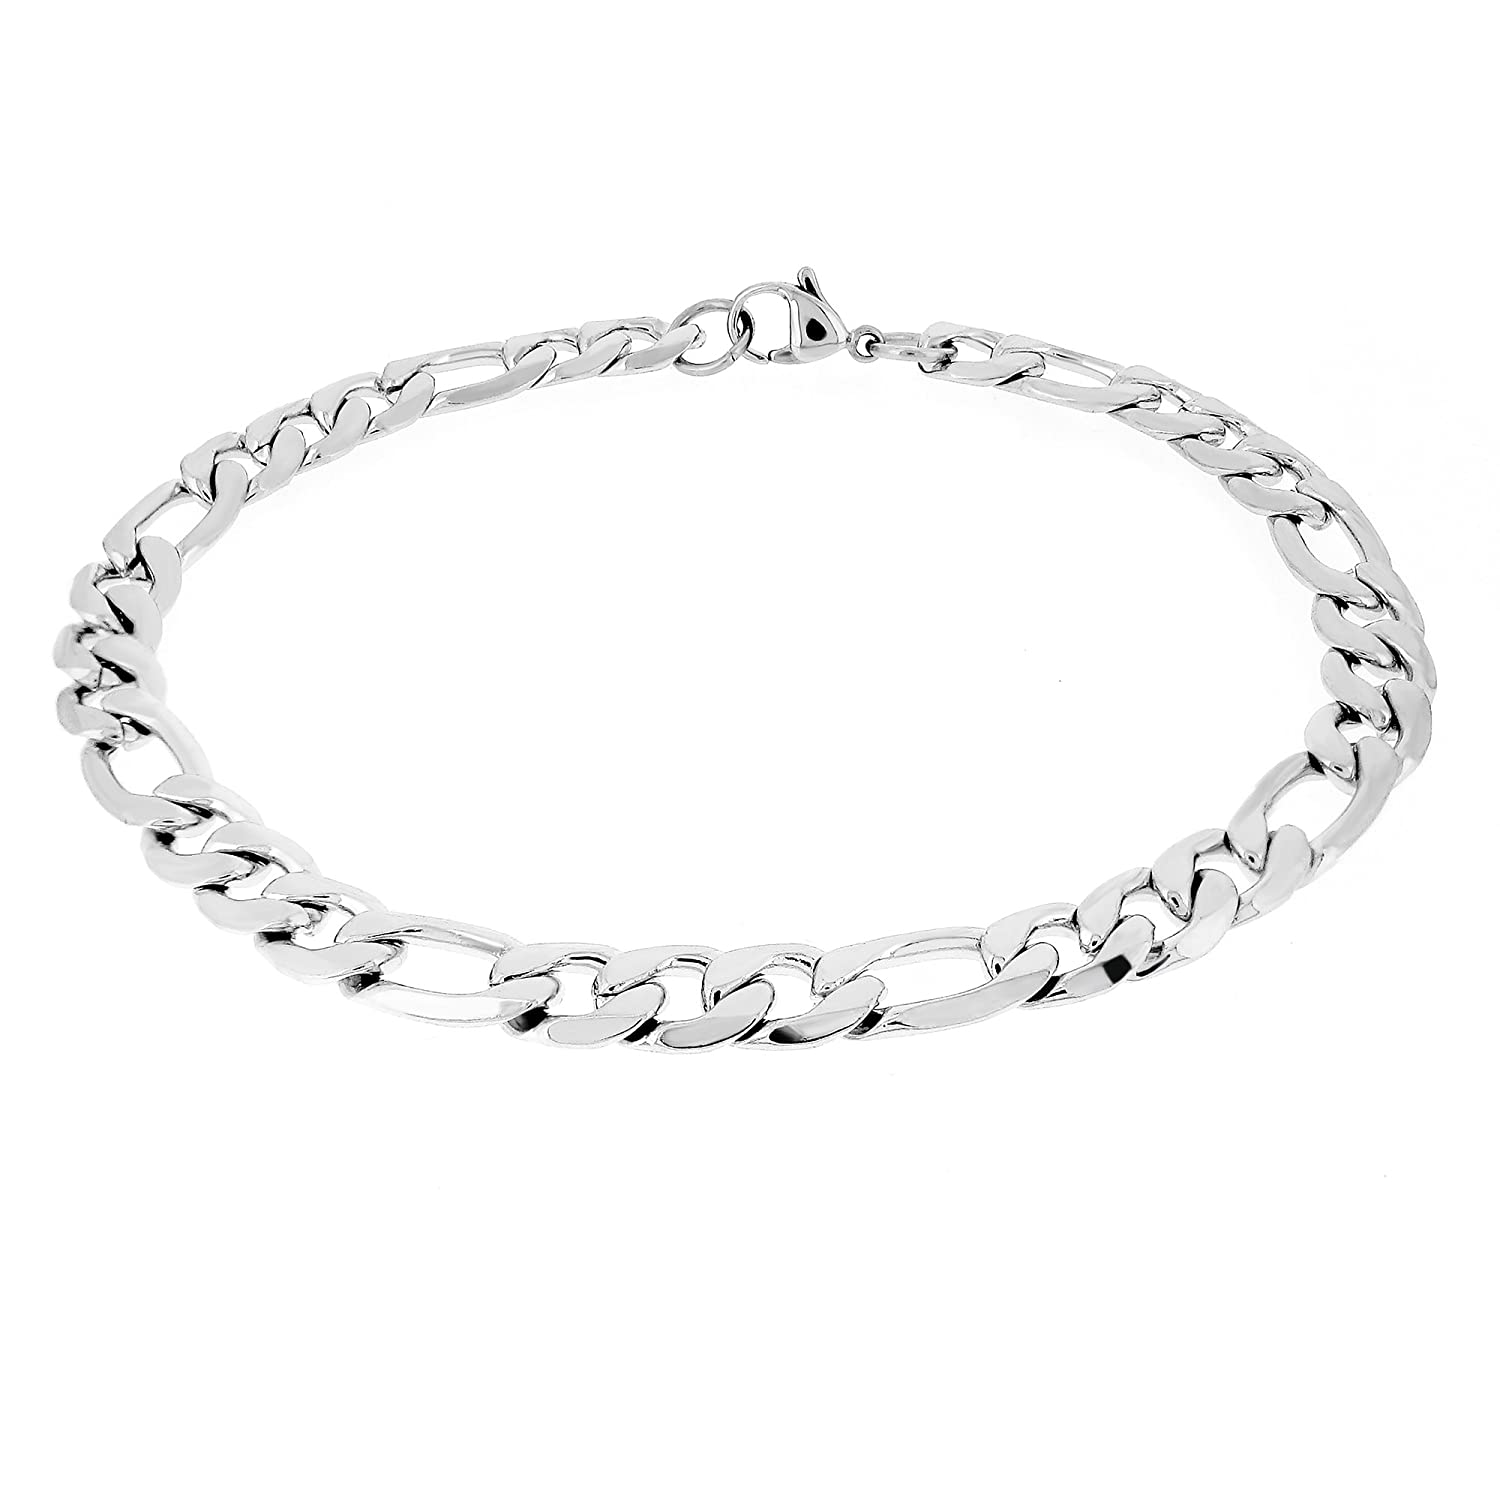 Pure316 - Surgical Stainless Steel (316L) Figaro Link Curb Bracelet - 8 inch FIG7-SSB-80